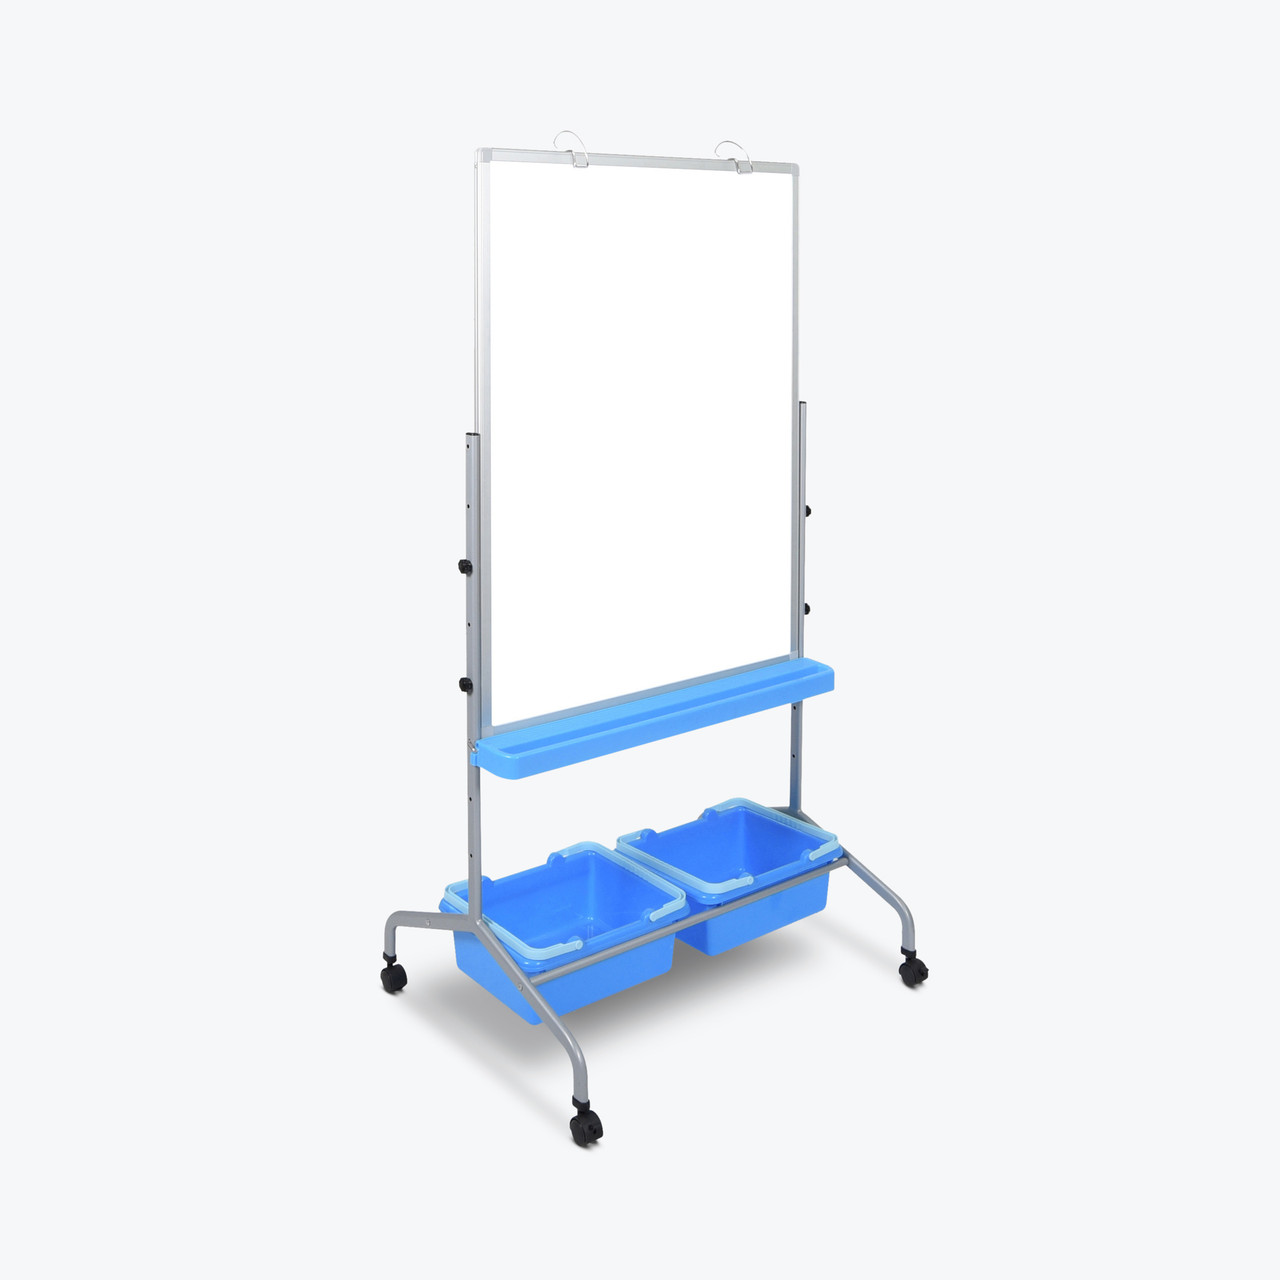 Classroom Chart Stand with Storage Bins L330